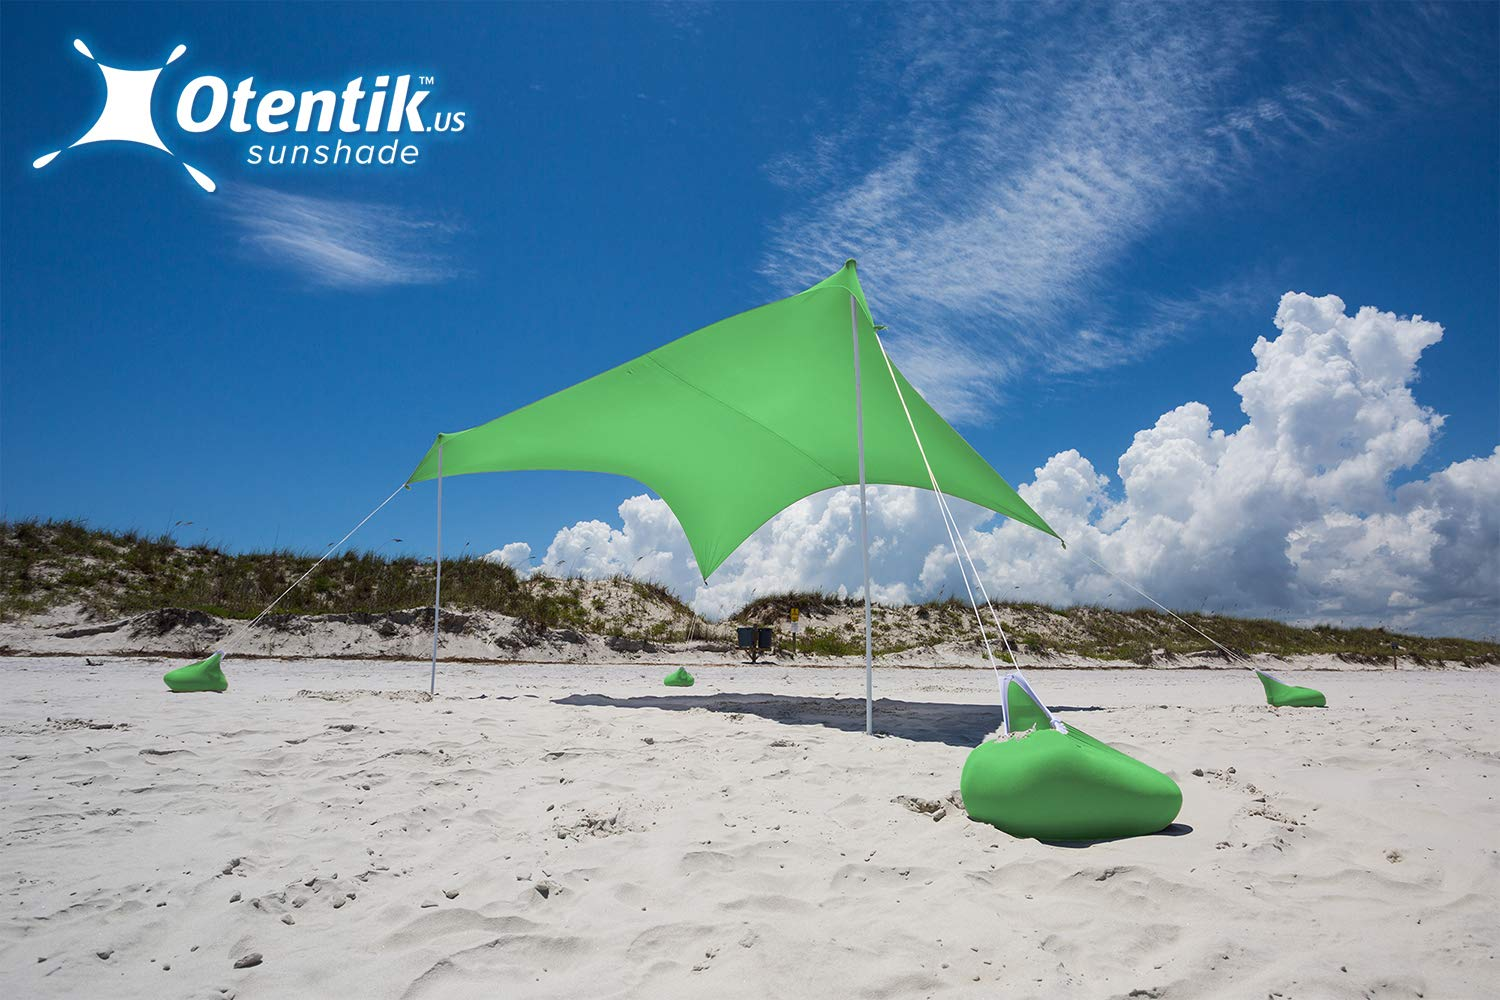 Otentik Beach Sunshade - with Sandbag Anchors - The Original Sunshade Since 2011 by Otentik